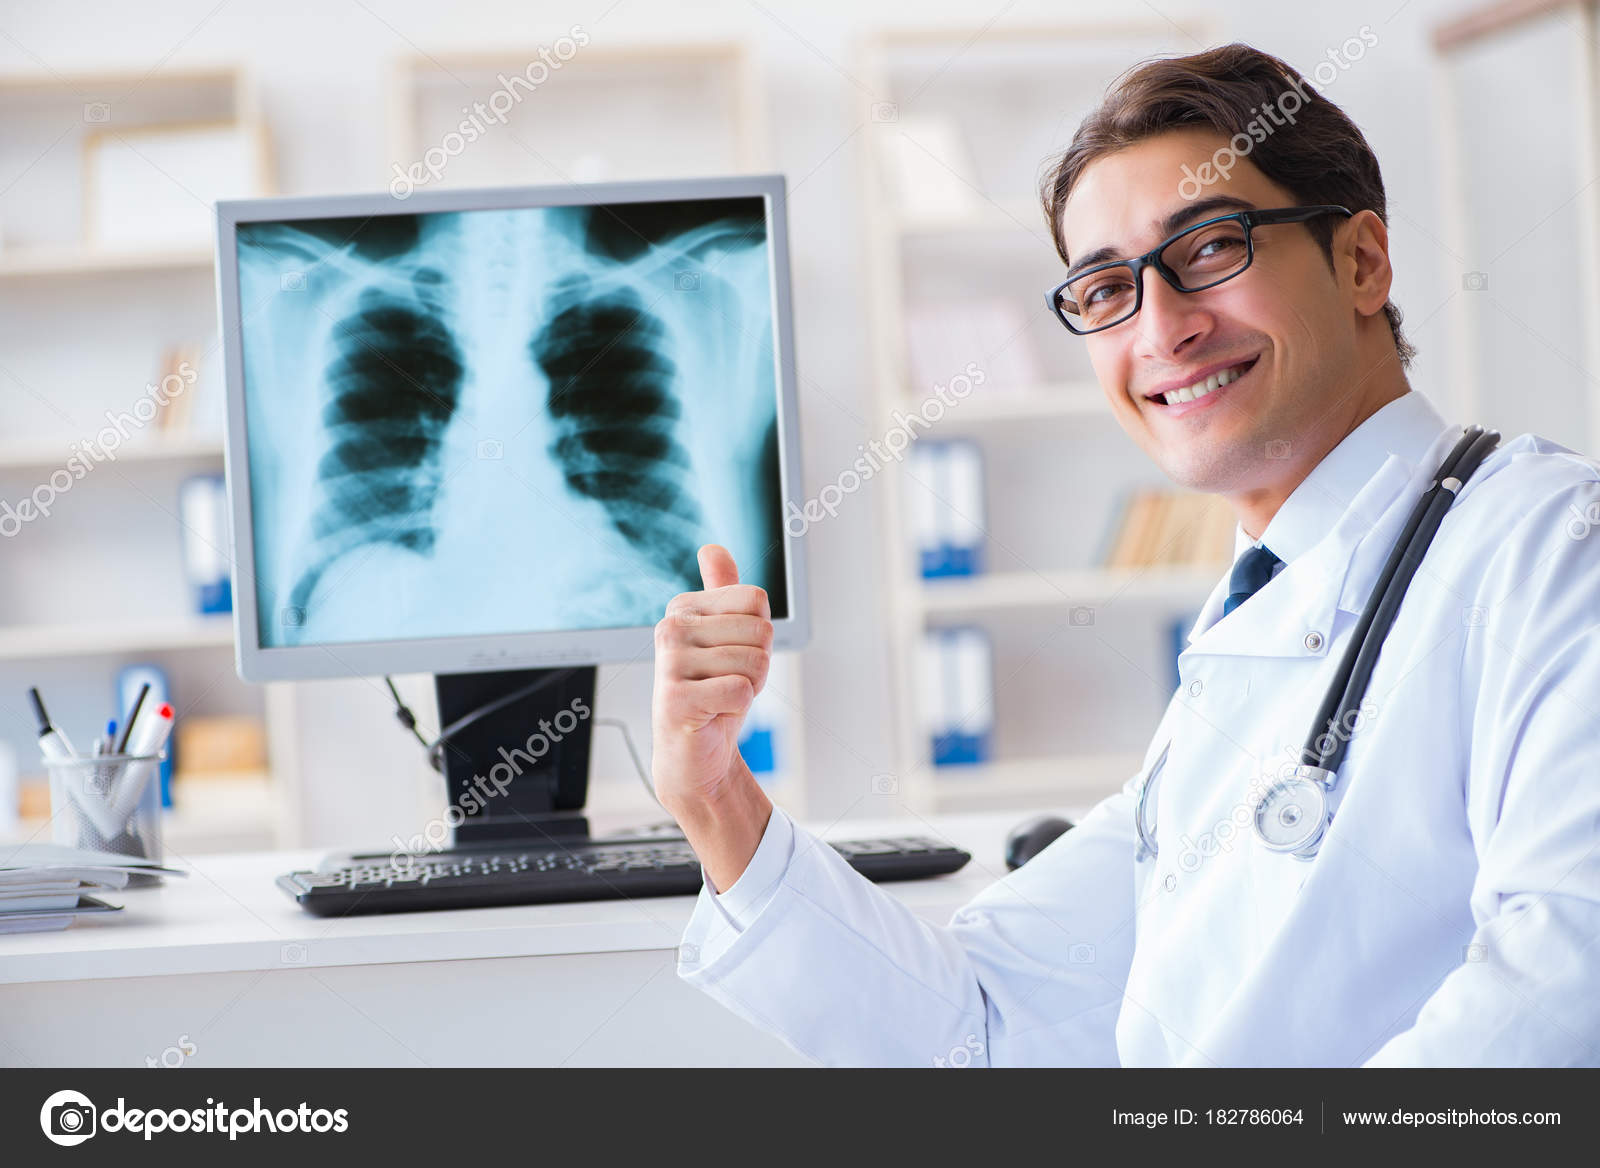 Doctor Radiologist Looking At X Ray Images Stock Photo Elnur